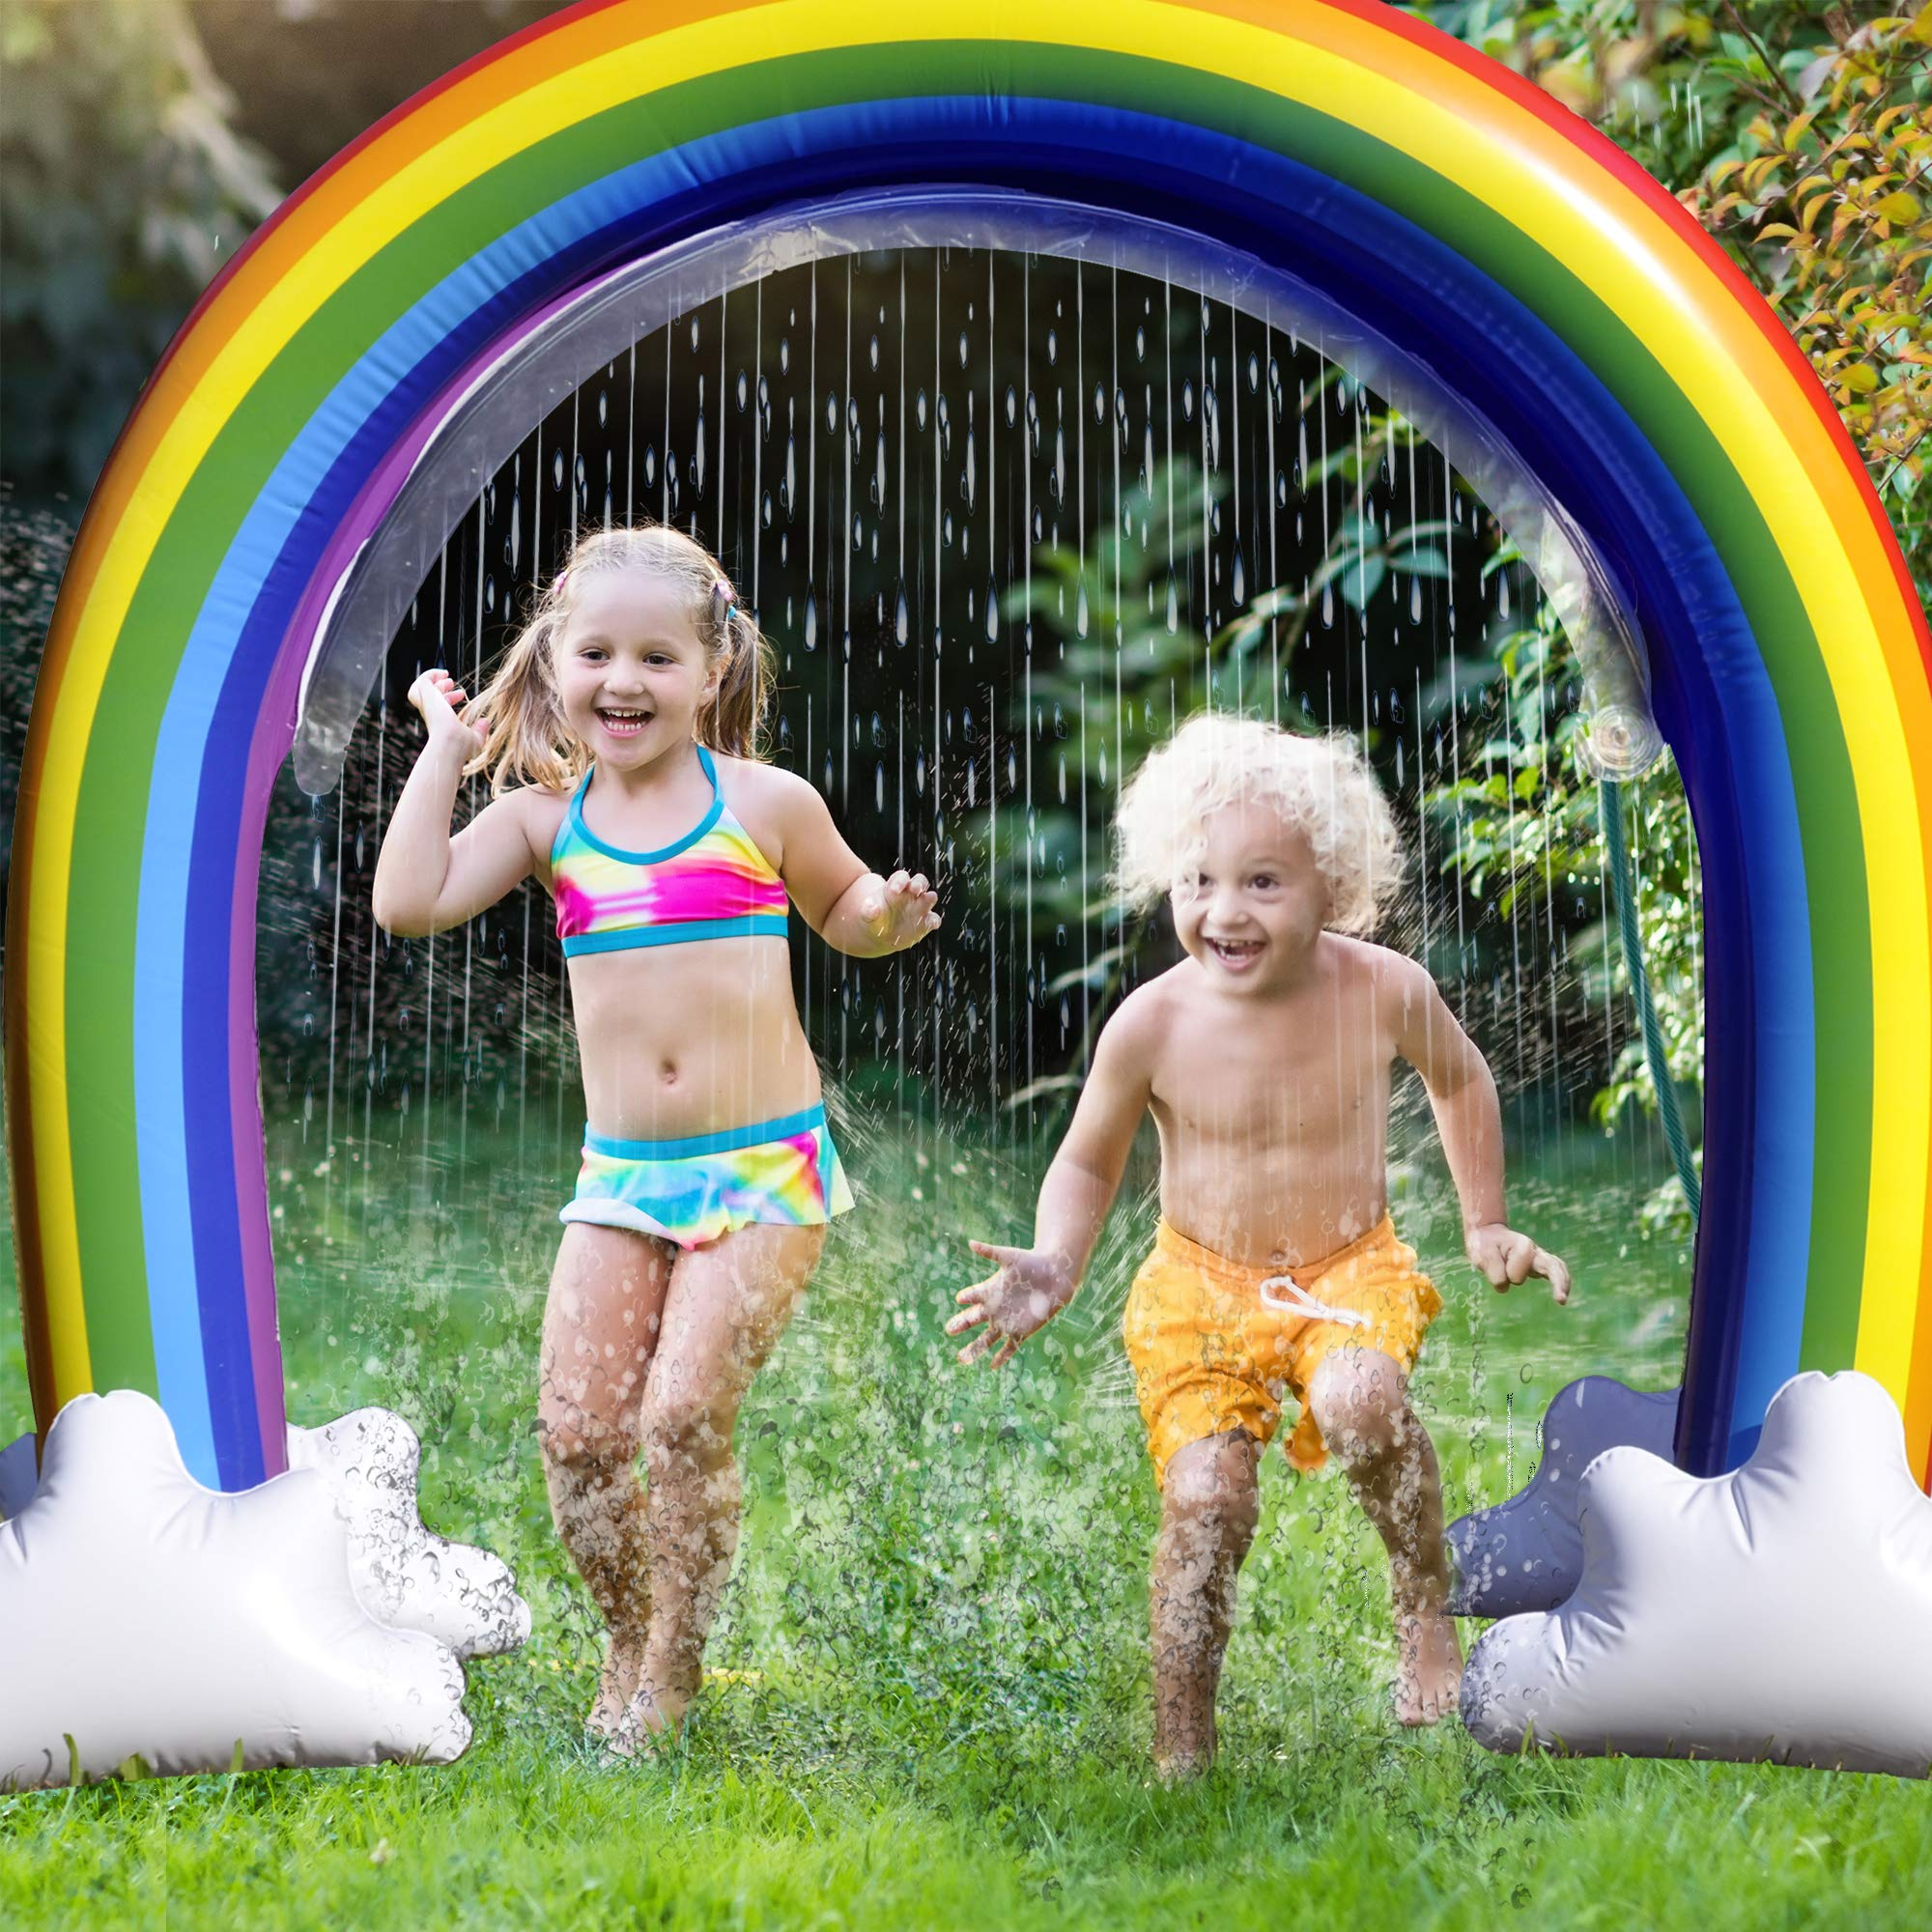 GoSlaz Inflatable Rainbow Sprinkler Toy - Kids Sprinklers for Outside - Fun Outdoor Water Play Sprinkler for Toddlers - Huge Colorful Back Yard Toddler Summer Toys - Easy to Set Up - Great Party Prop by GoSlaz